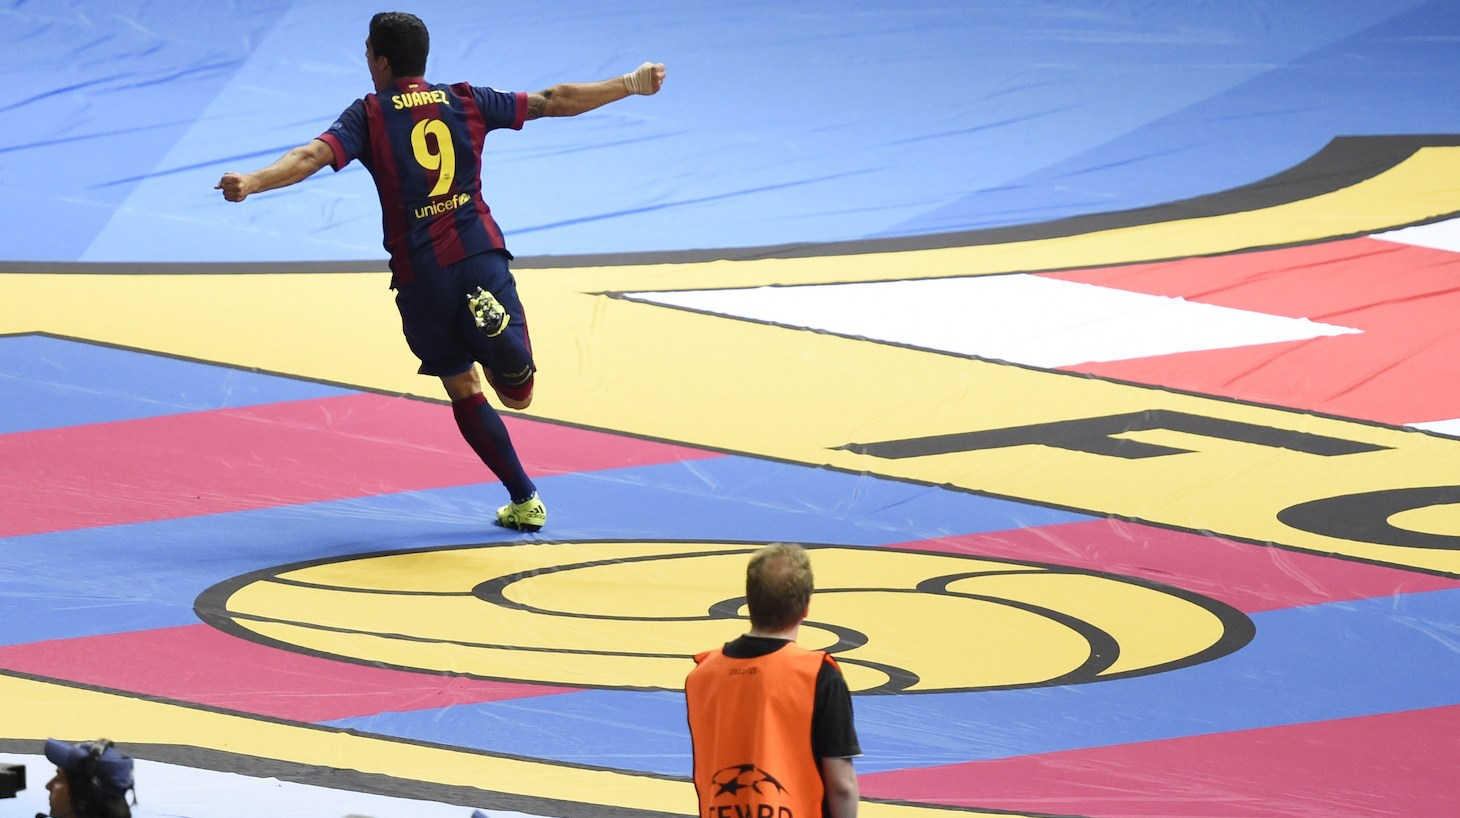 Barcelona's Uruguayan forward Luis Suarez (L) celebrates after scoring the 1-2 during the UEFA Champions League Final football match between Juventus and FC Barcelona at the Olympic Stadium in Berlin on June 6, 2015.